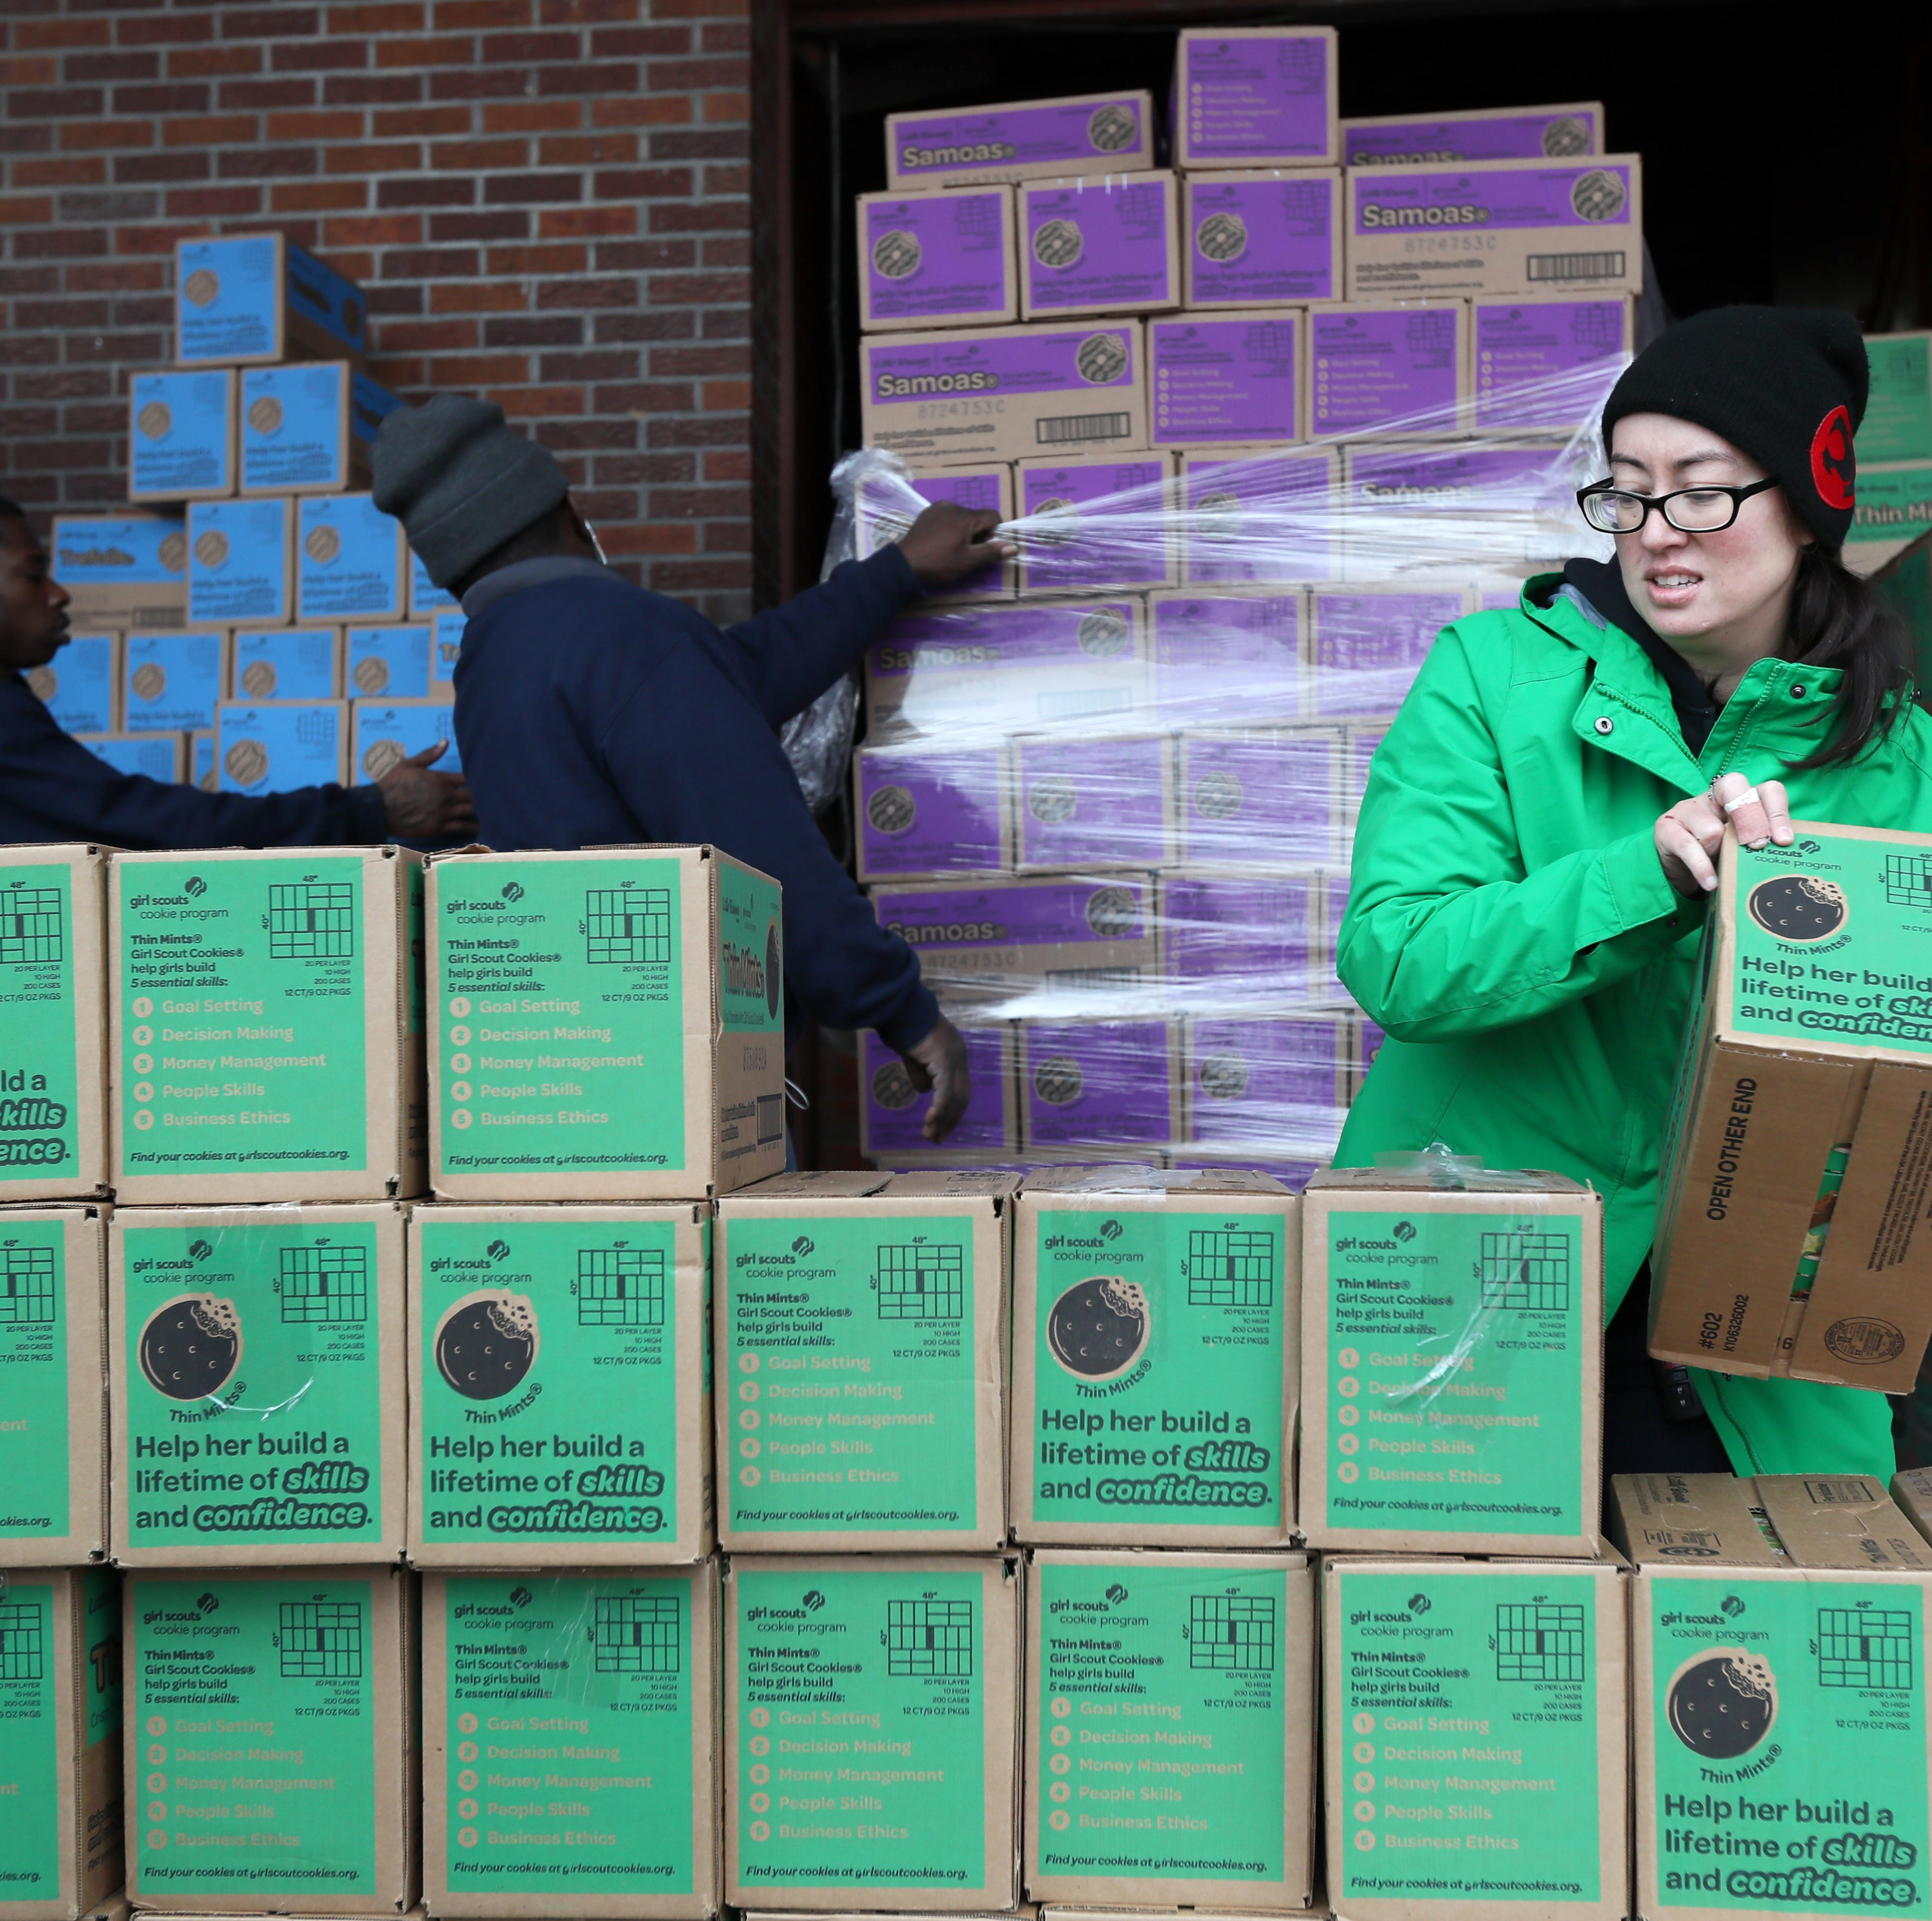 The Weekly Dish: 1.5 million boxes of Girl Scout Cookies to arrive in Memphis